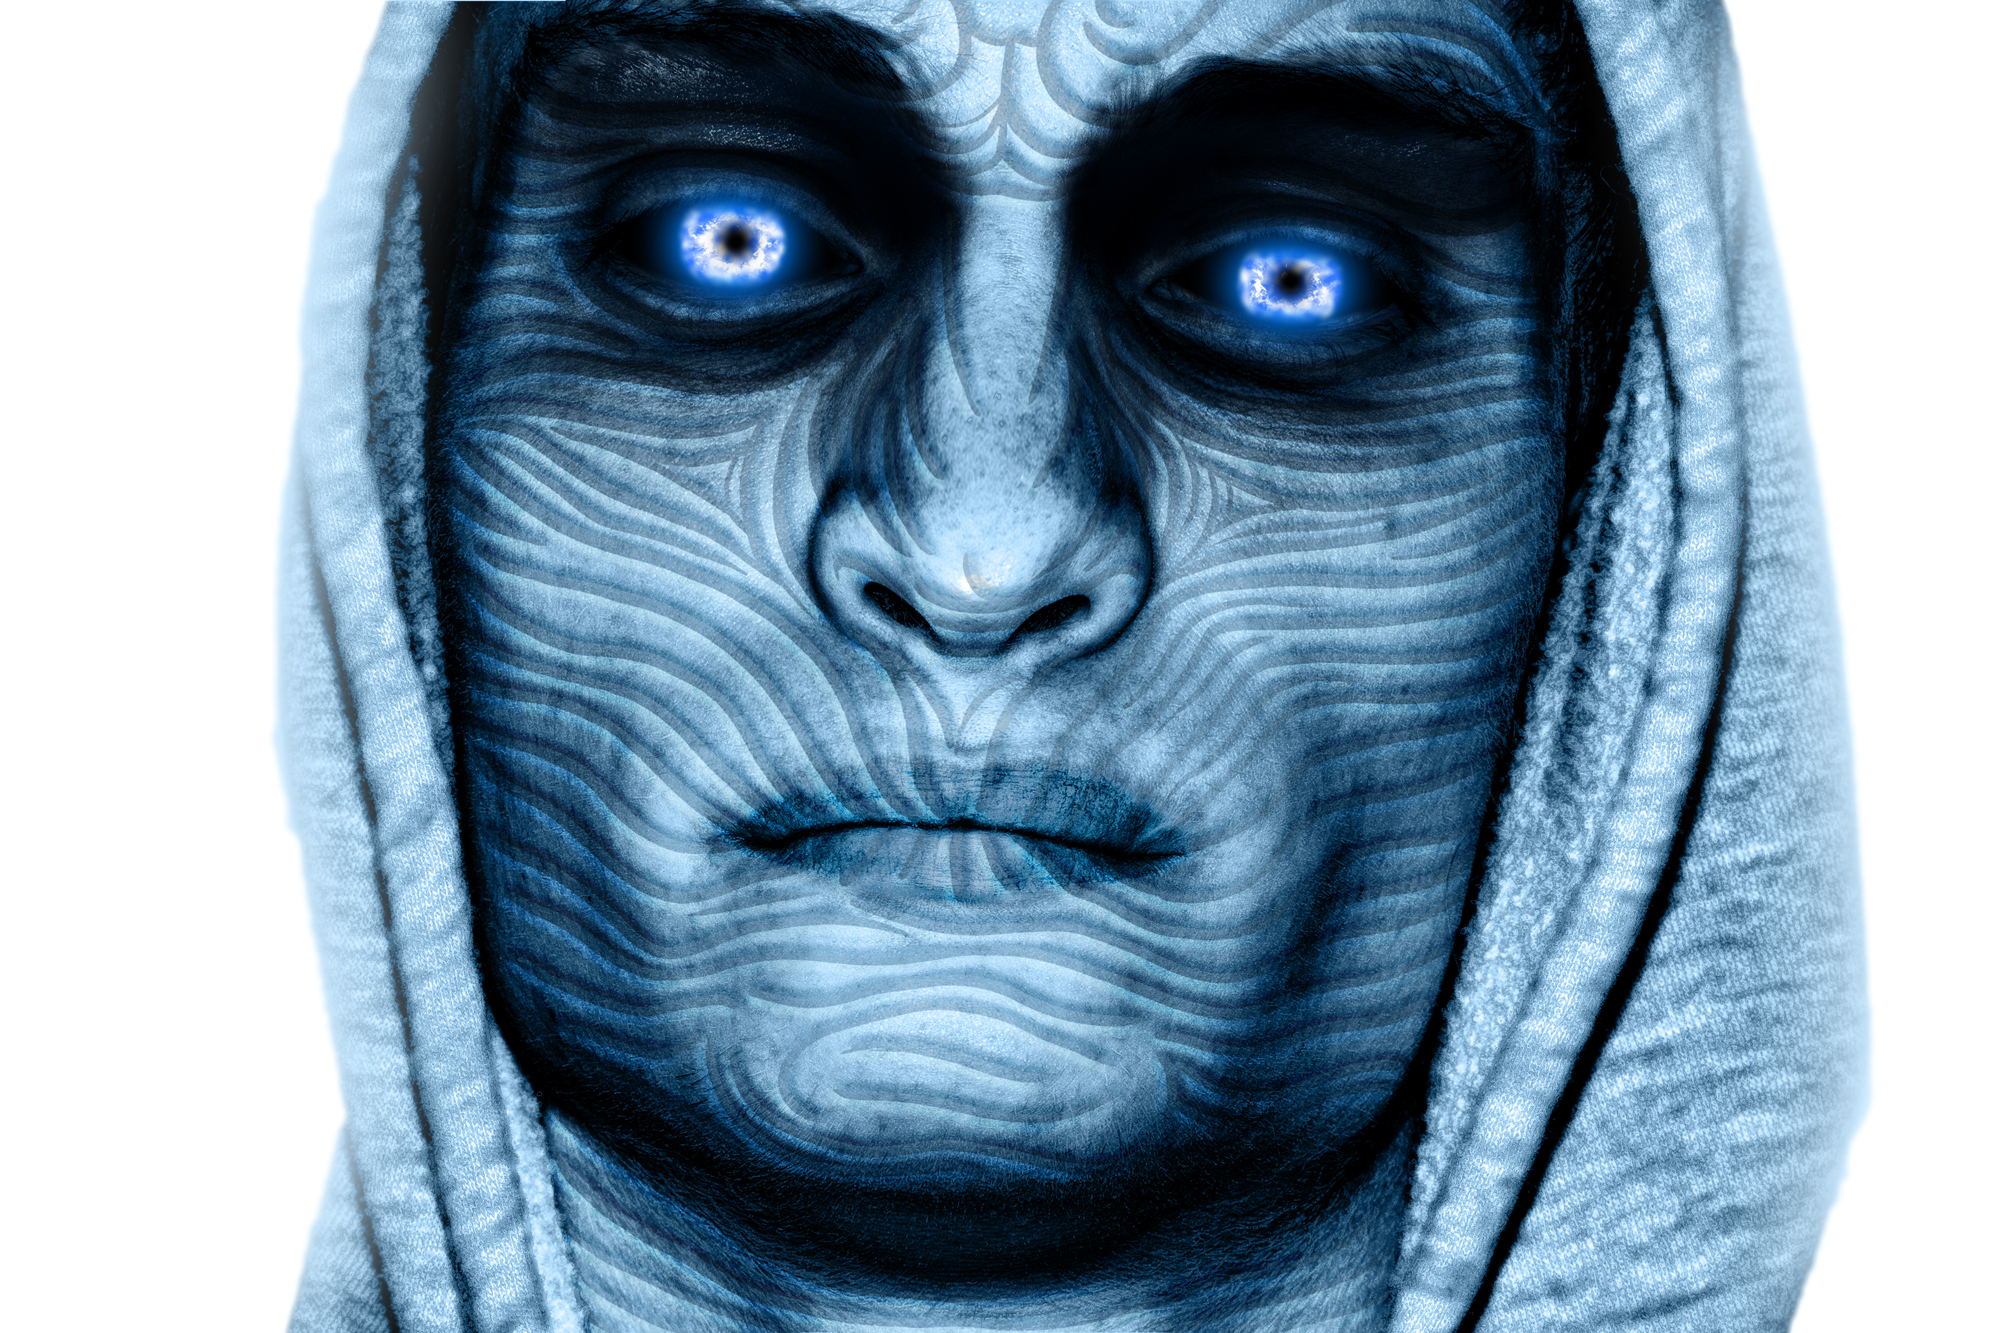 White walker project after adding lifeless pupils